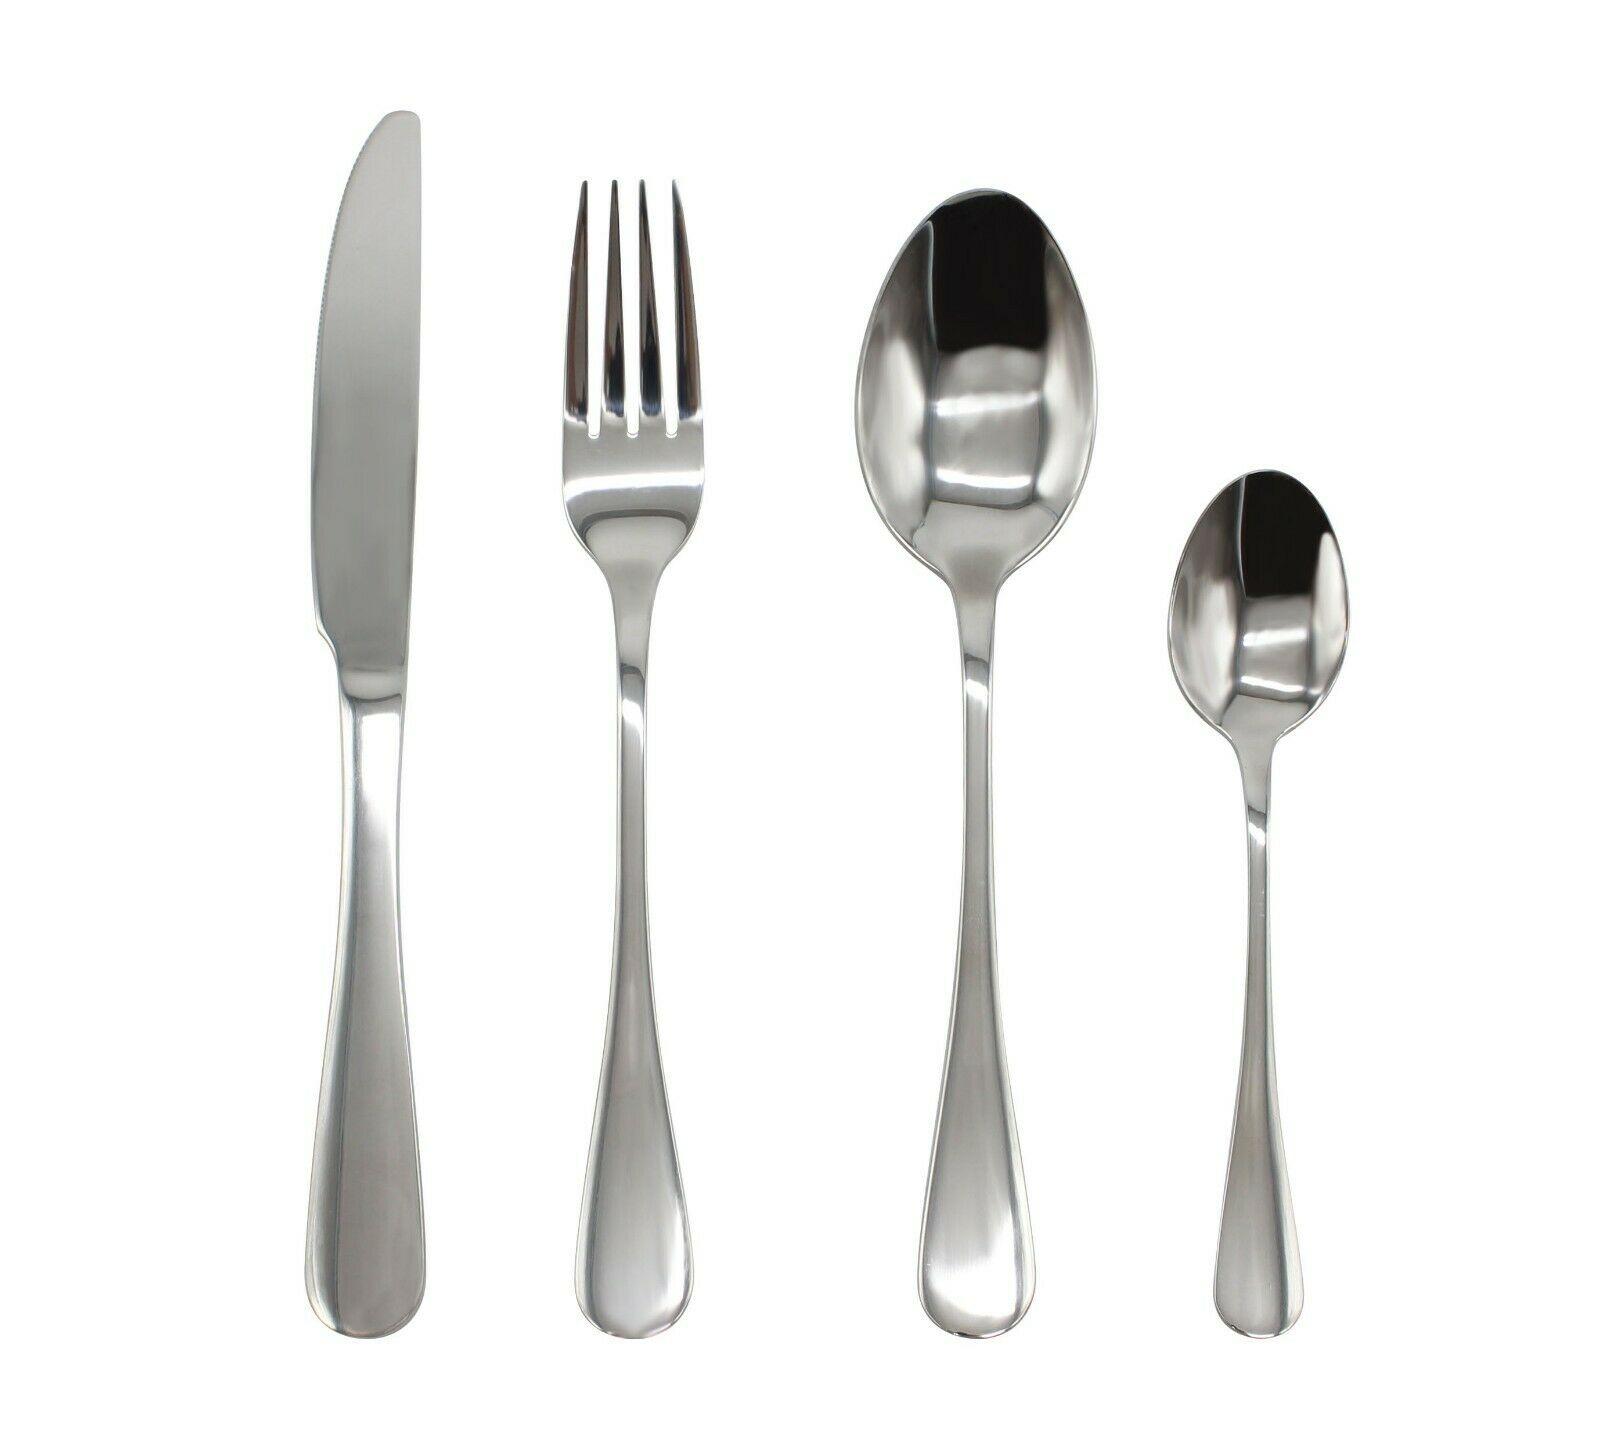 Stainless Steel Cutlery Sets 162432 piece Set Wedding Party Canteen Wholesale